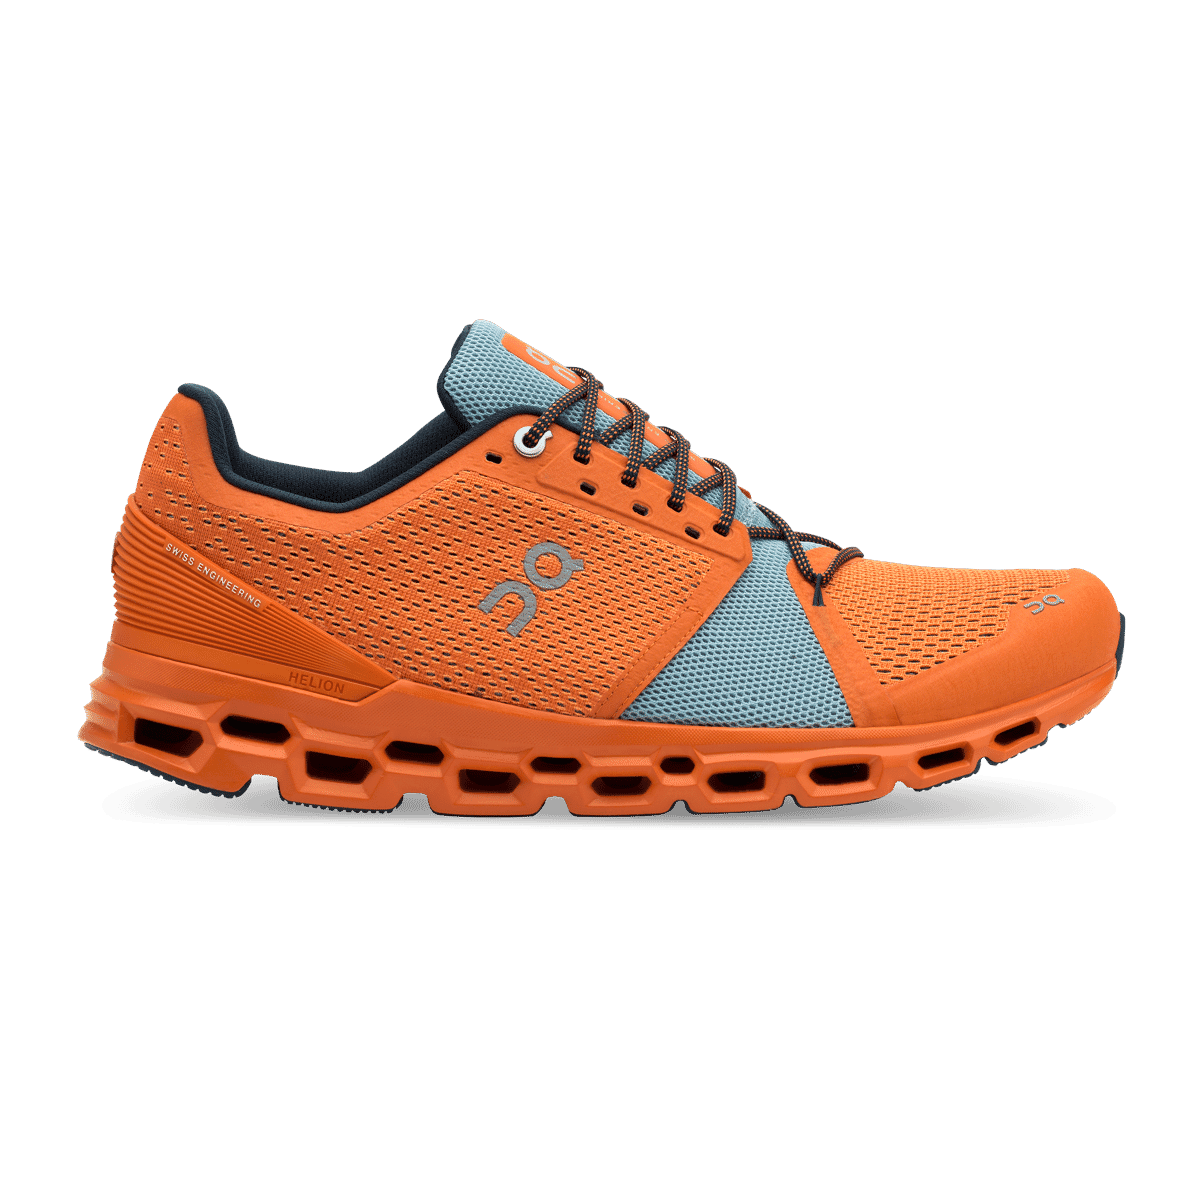 Cloudstratus Maximum Cushioned Running Shoe | On